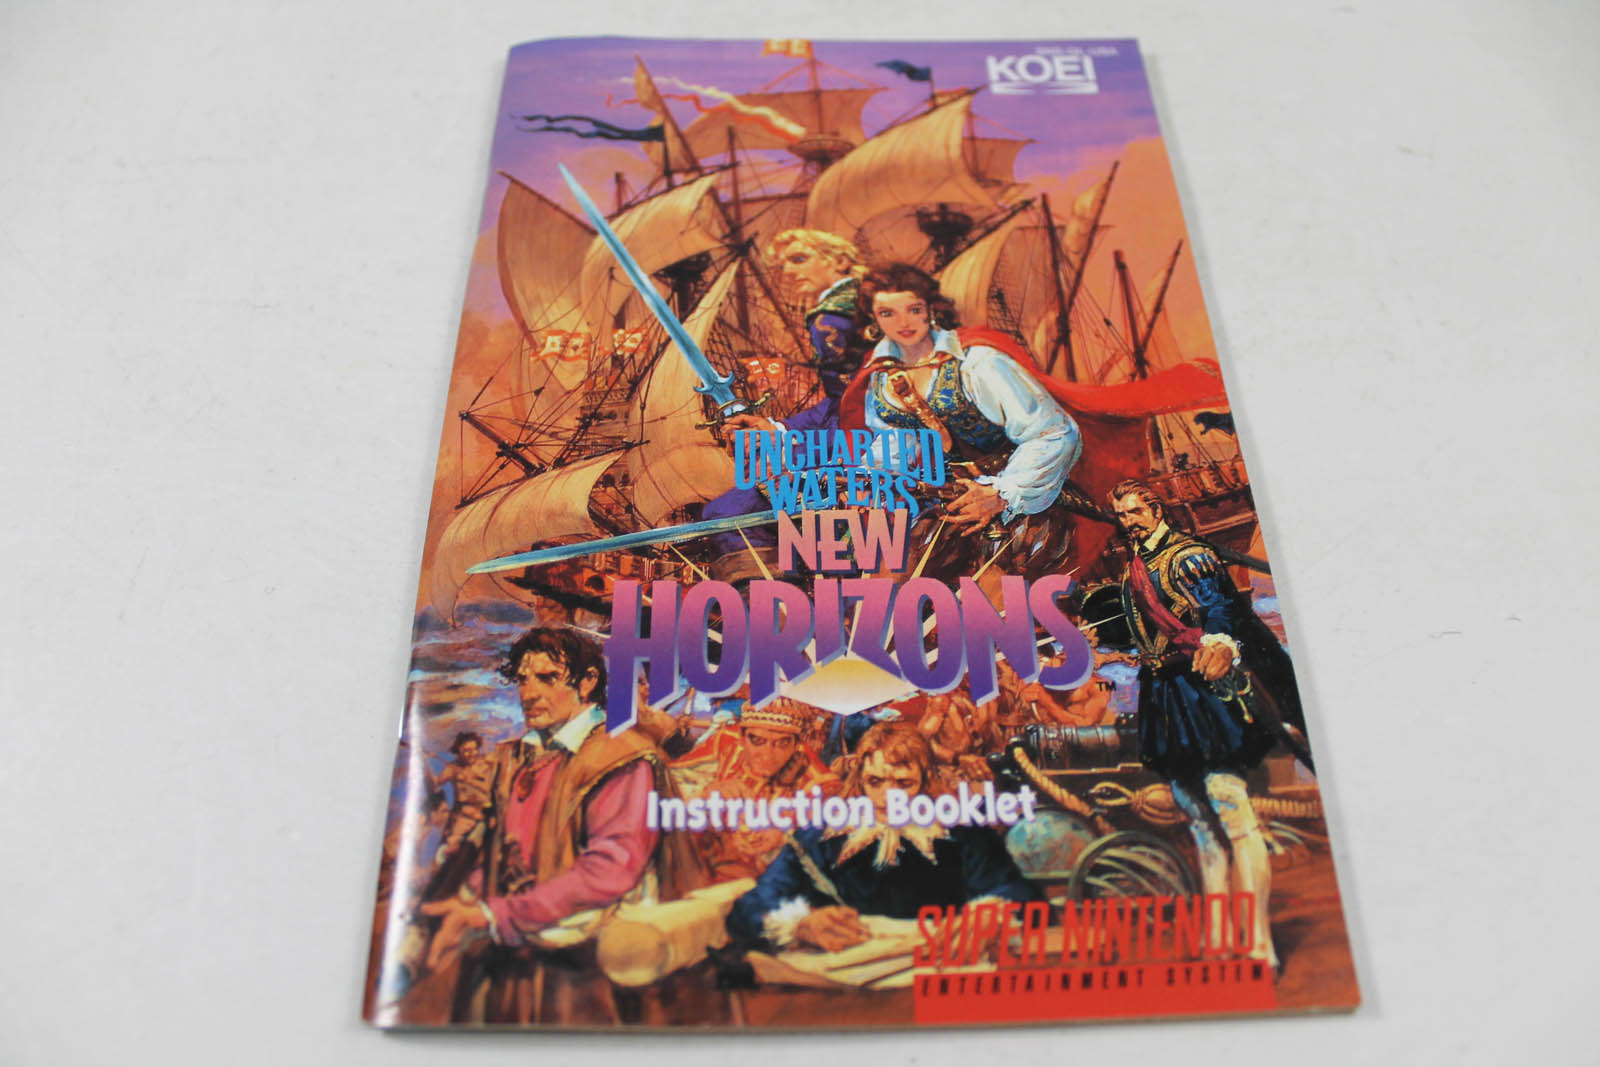 uncharted waters new horizons manual